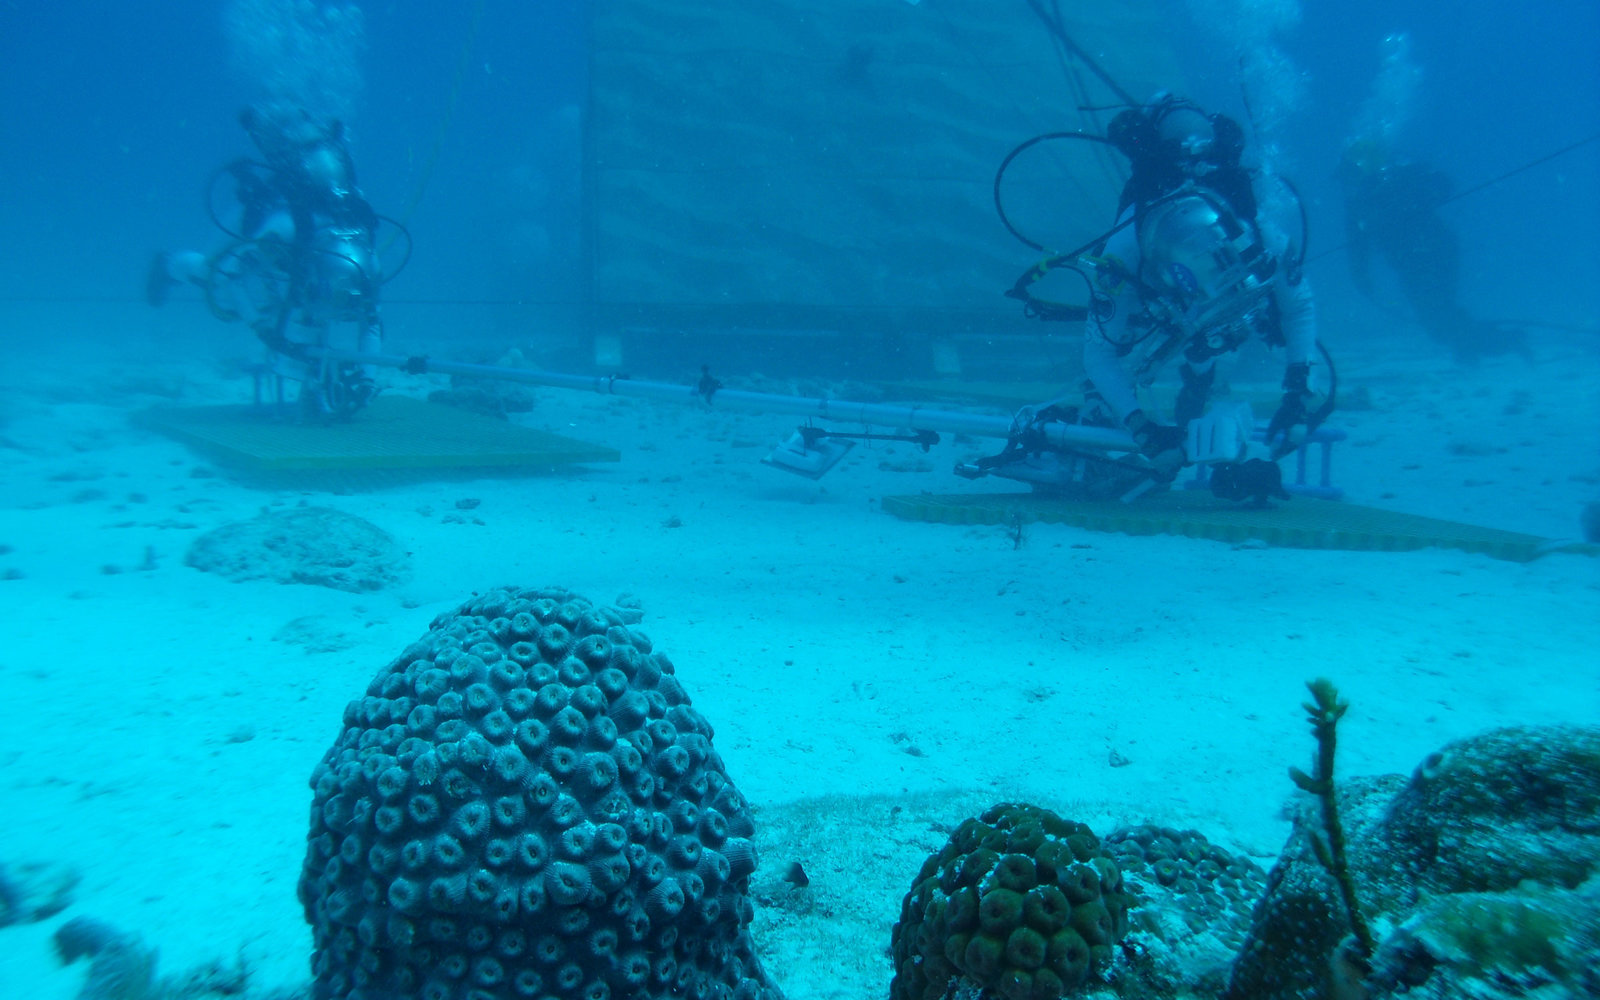 underwater-space-2-NASA0716.jpg